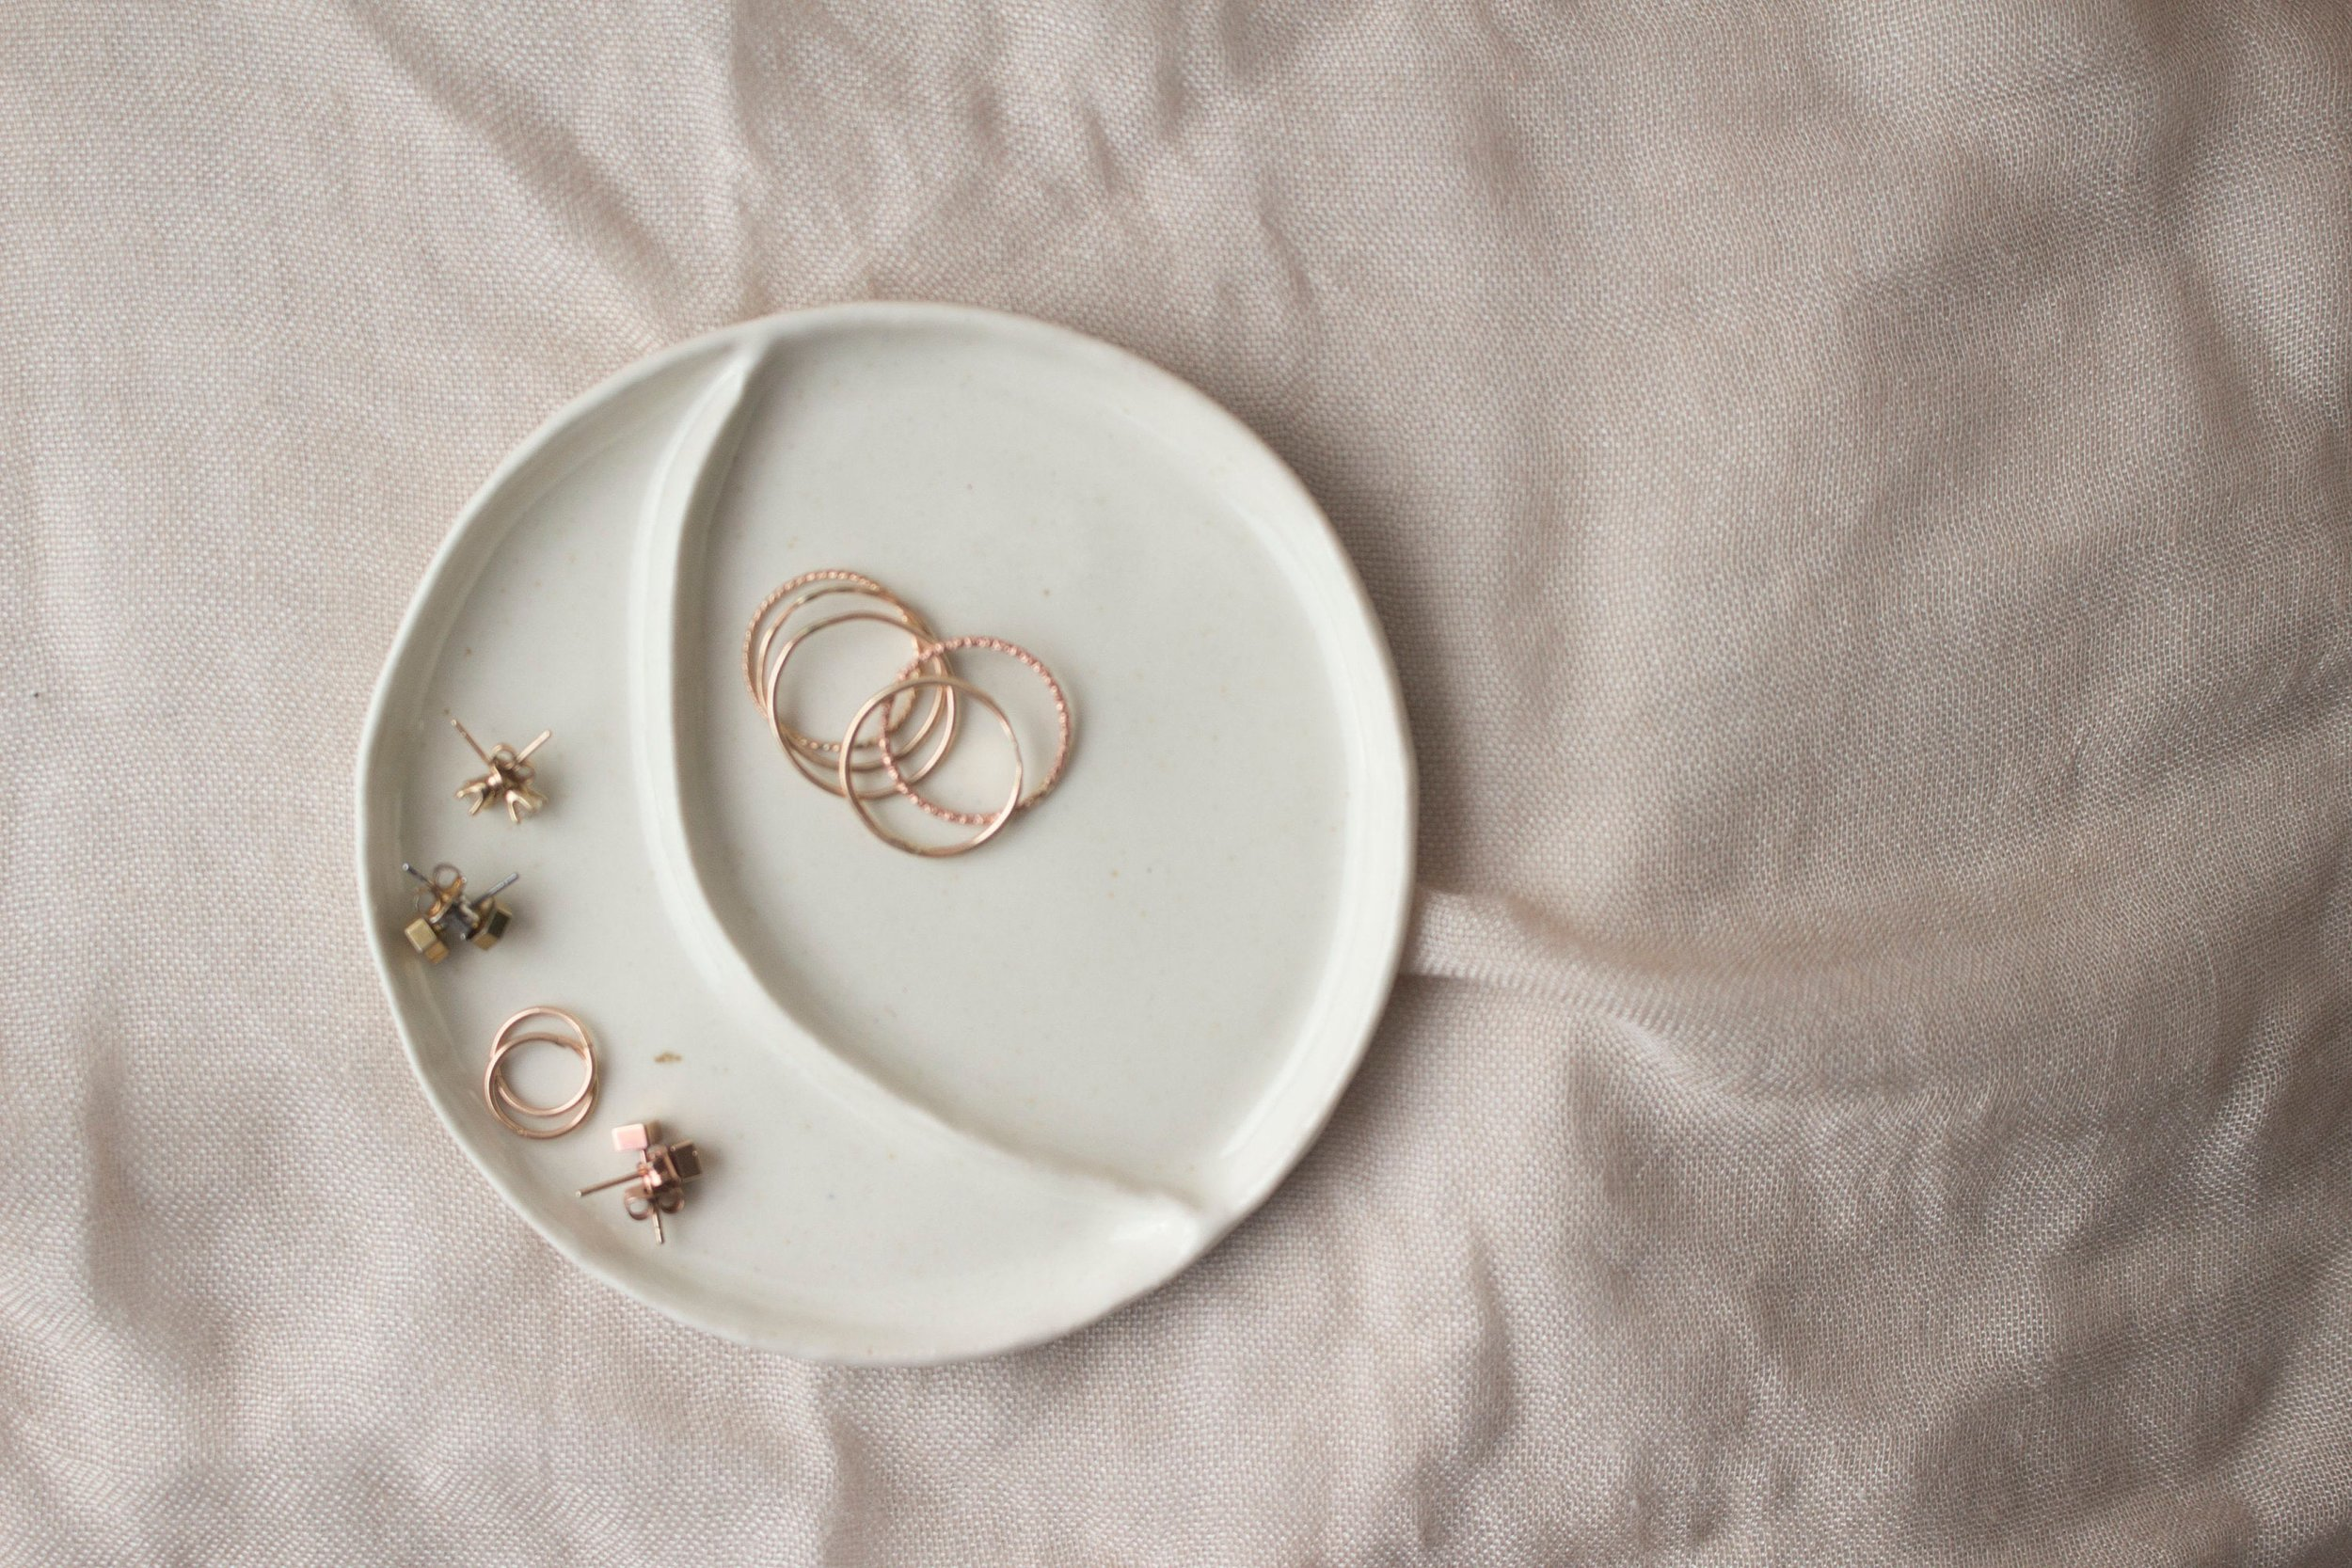 Simple Luna Moon Wedding Ring Dish by Cool Factory